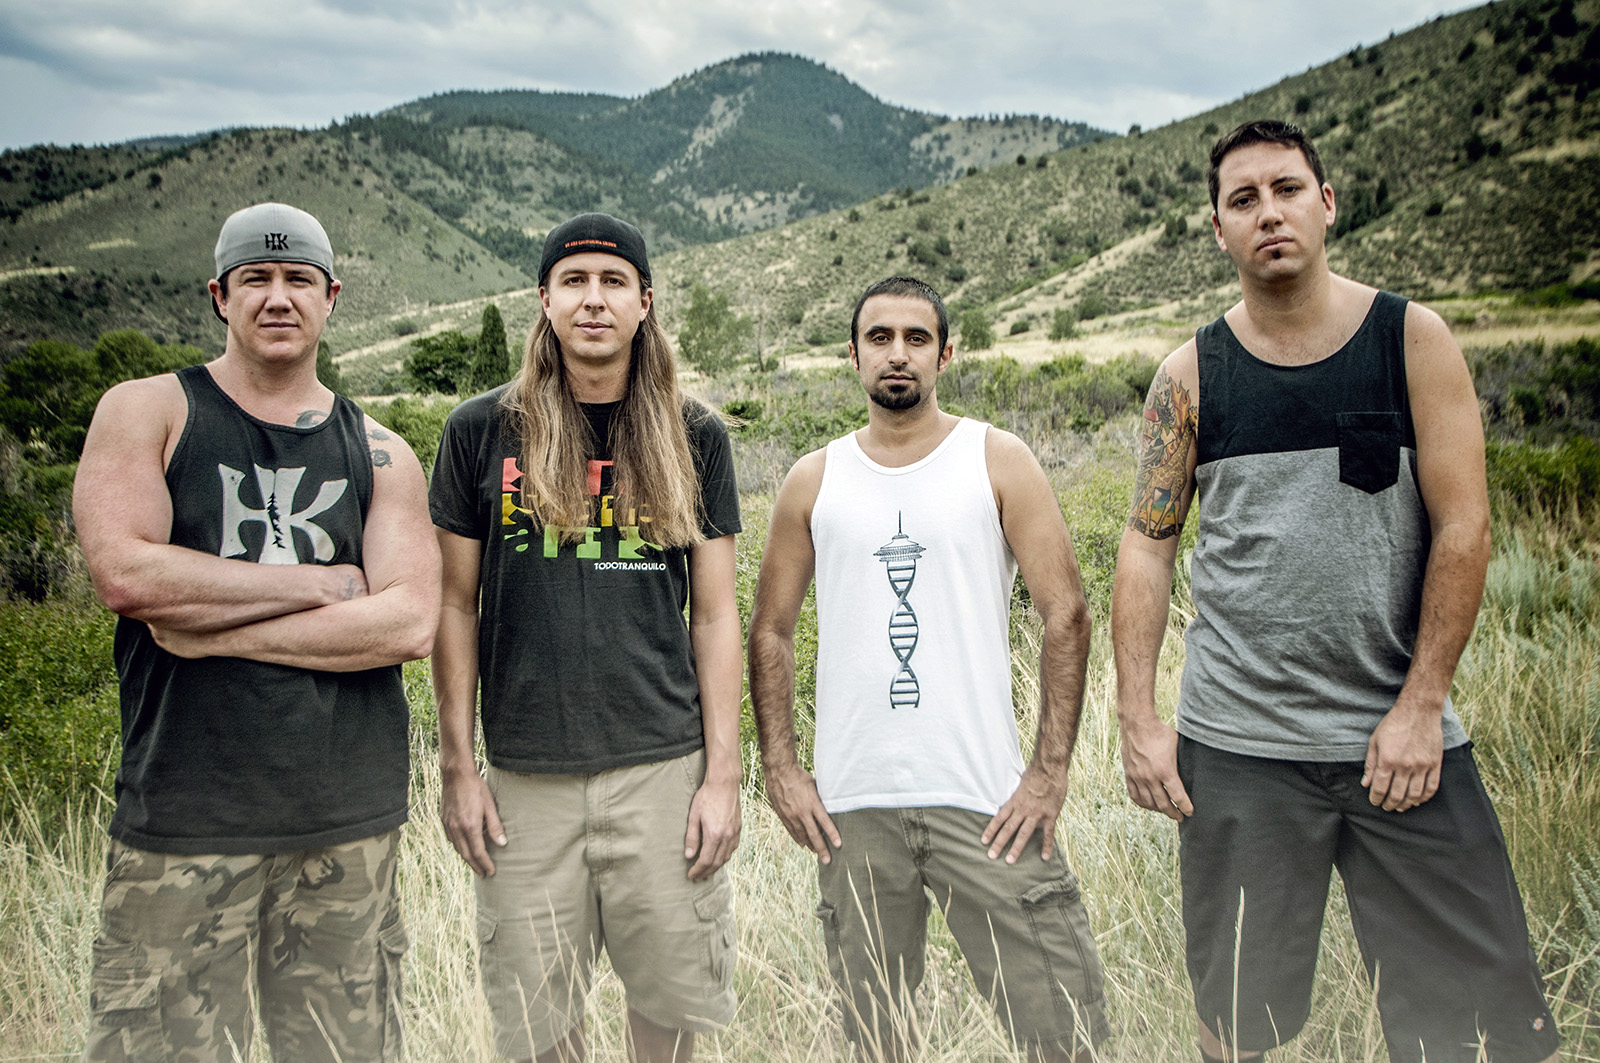 Rebelution is Marley D. Williams, left, Rory Carey, Eric Rachmany and Wesley Finley.